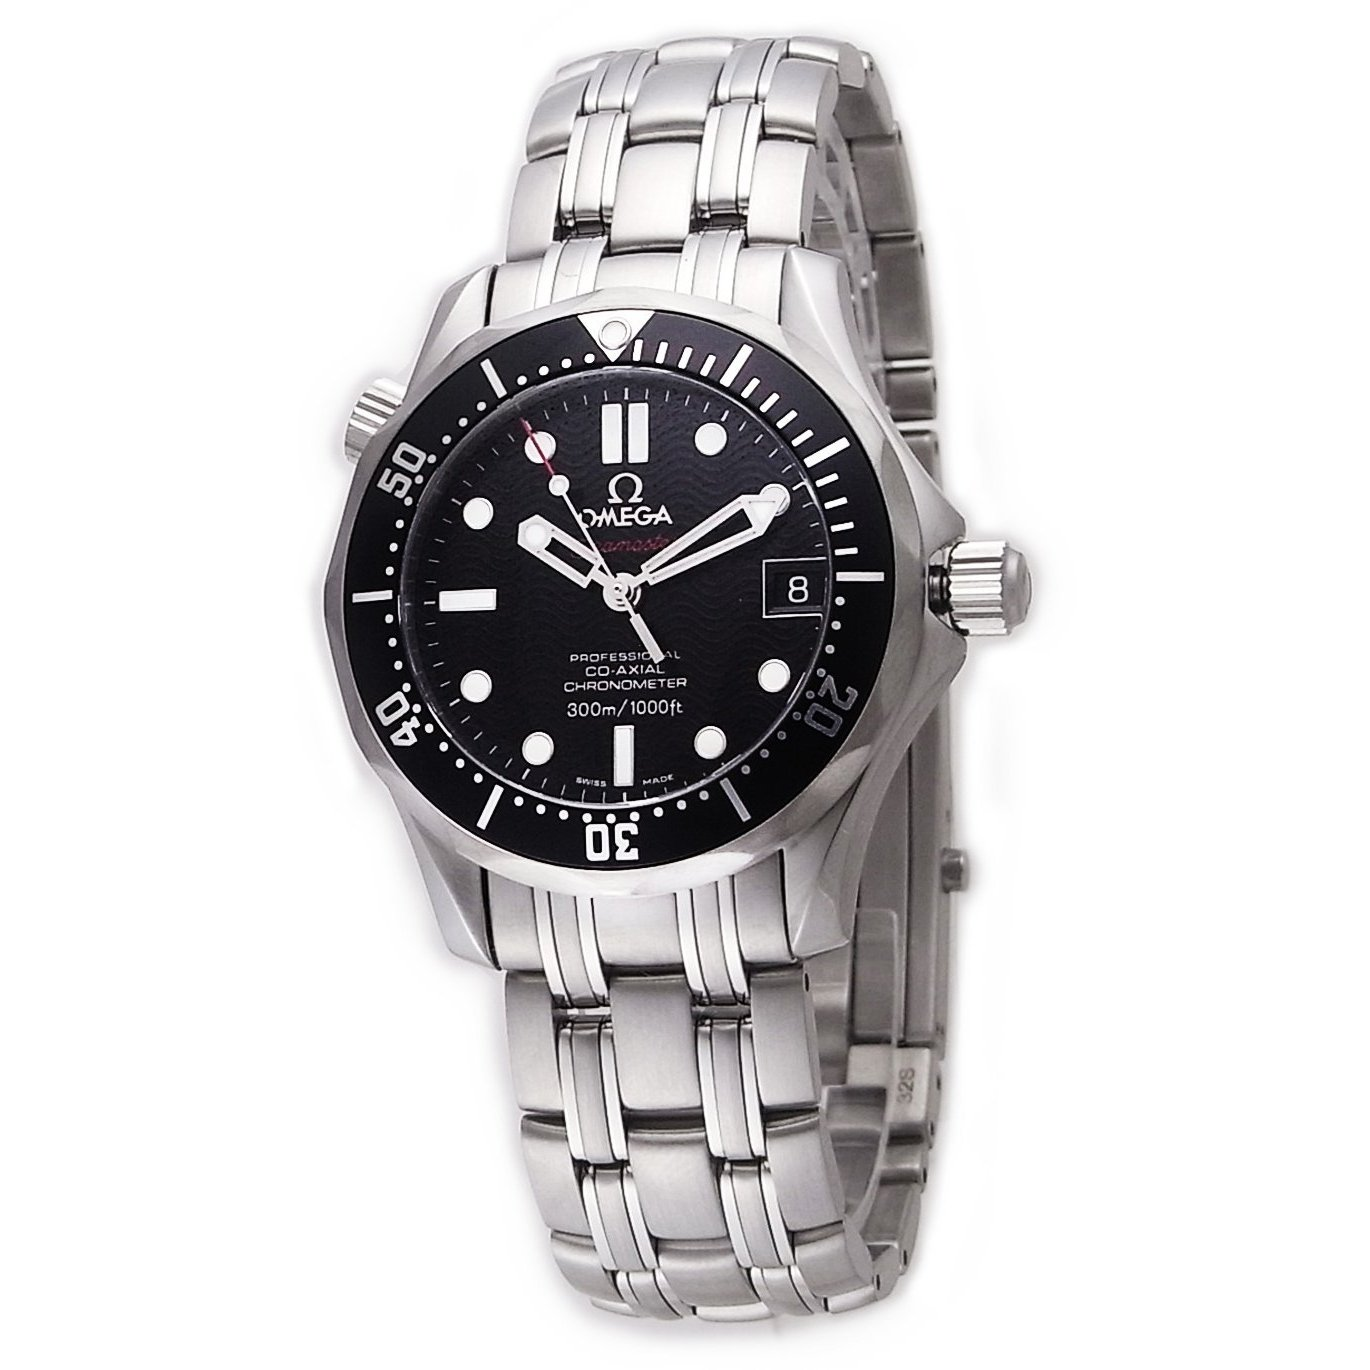 Omega seamaster diver 300m automatic co axial watch for Omega diver